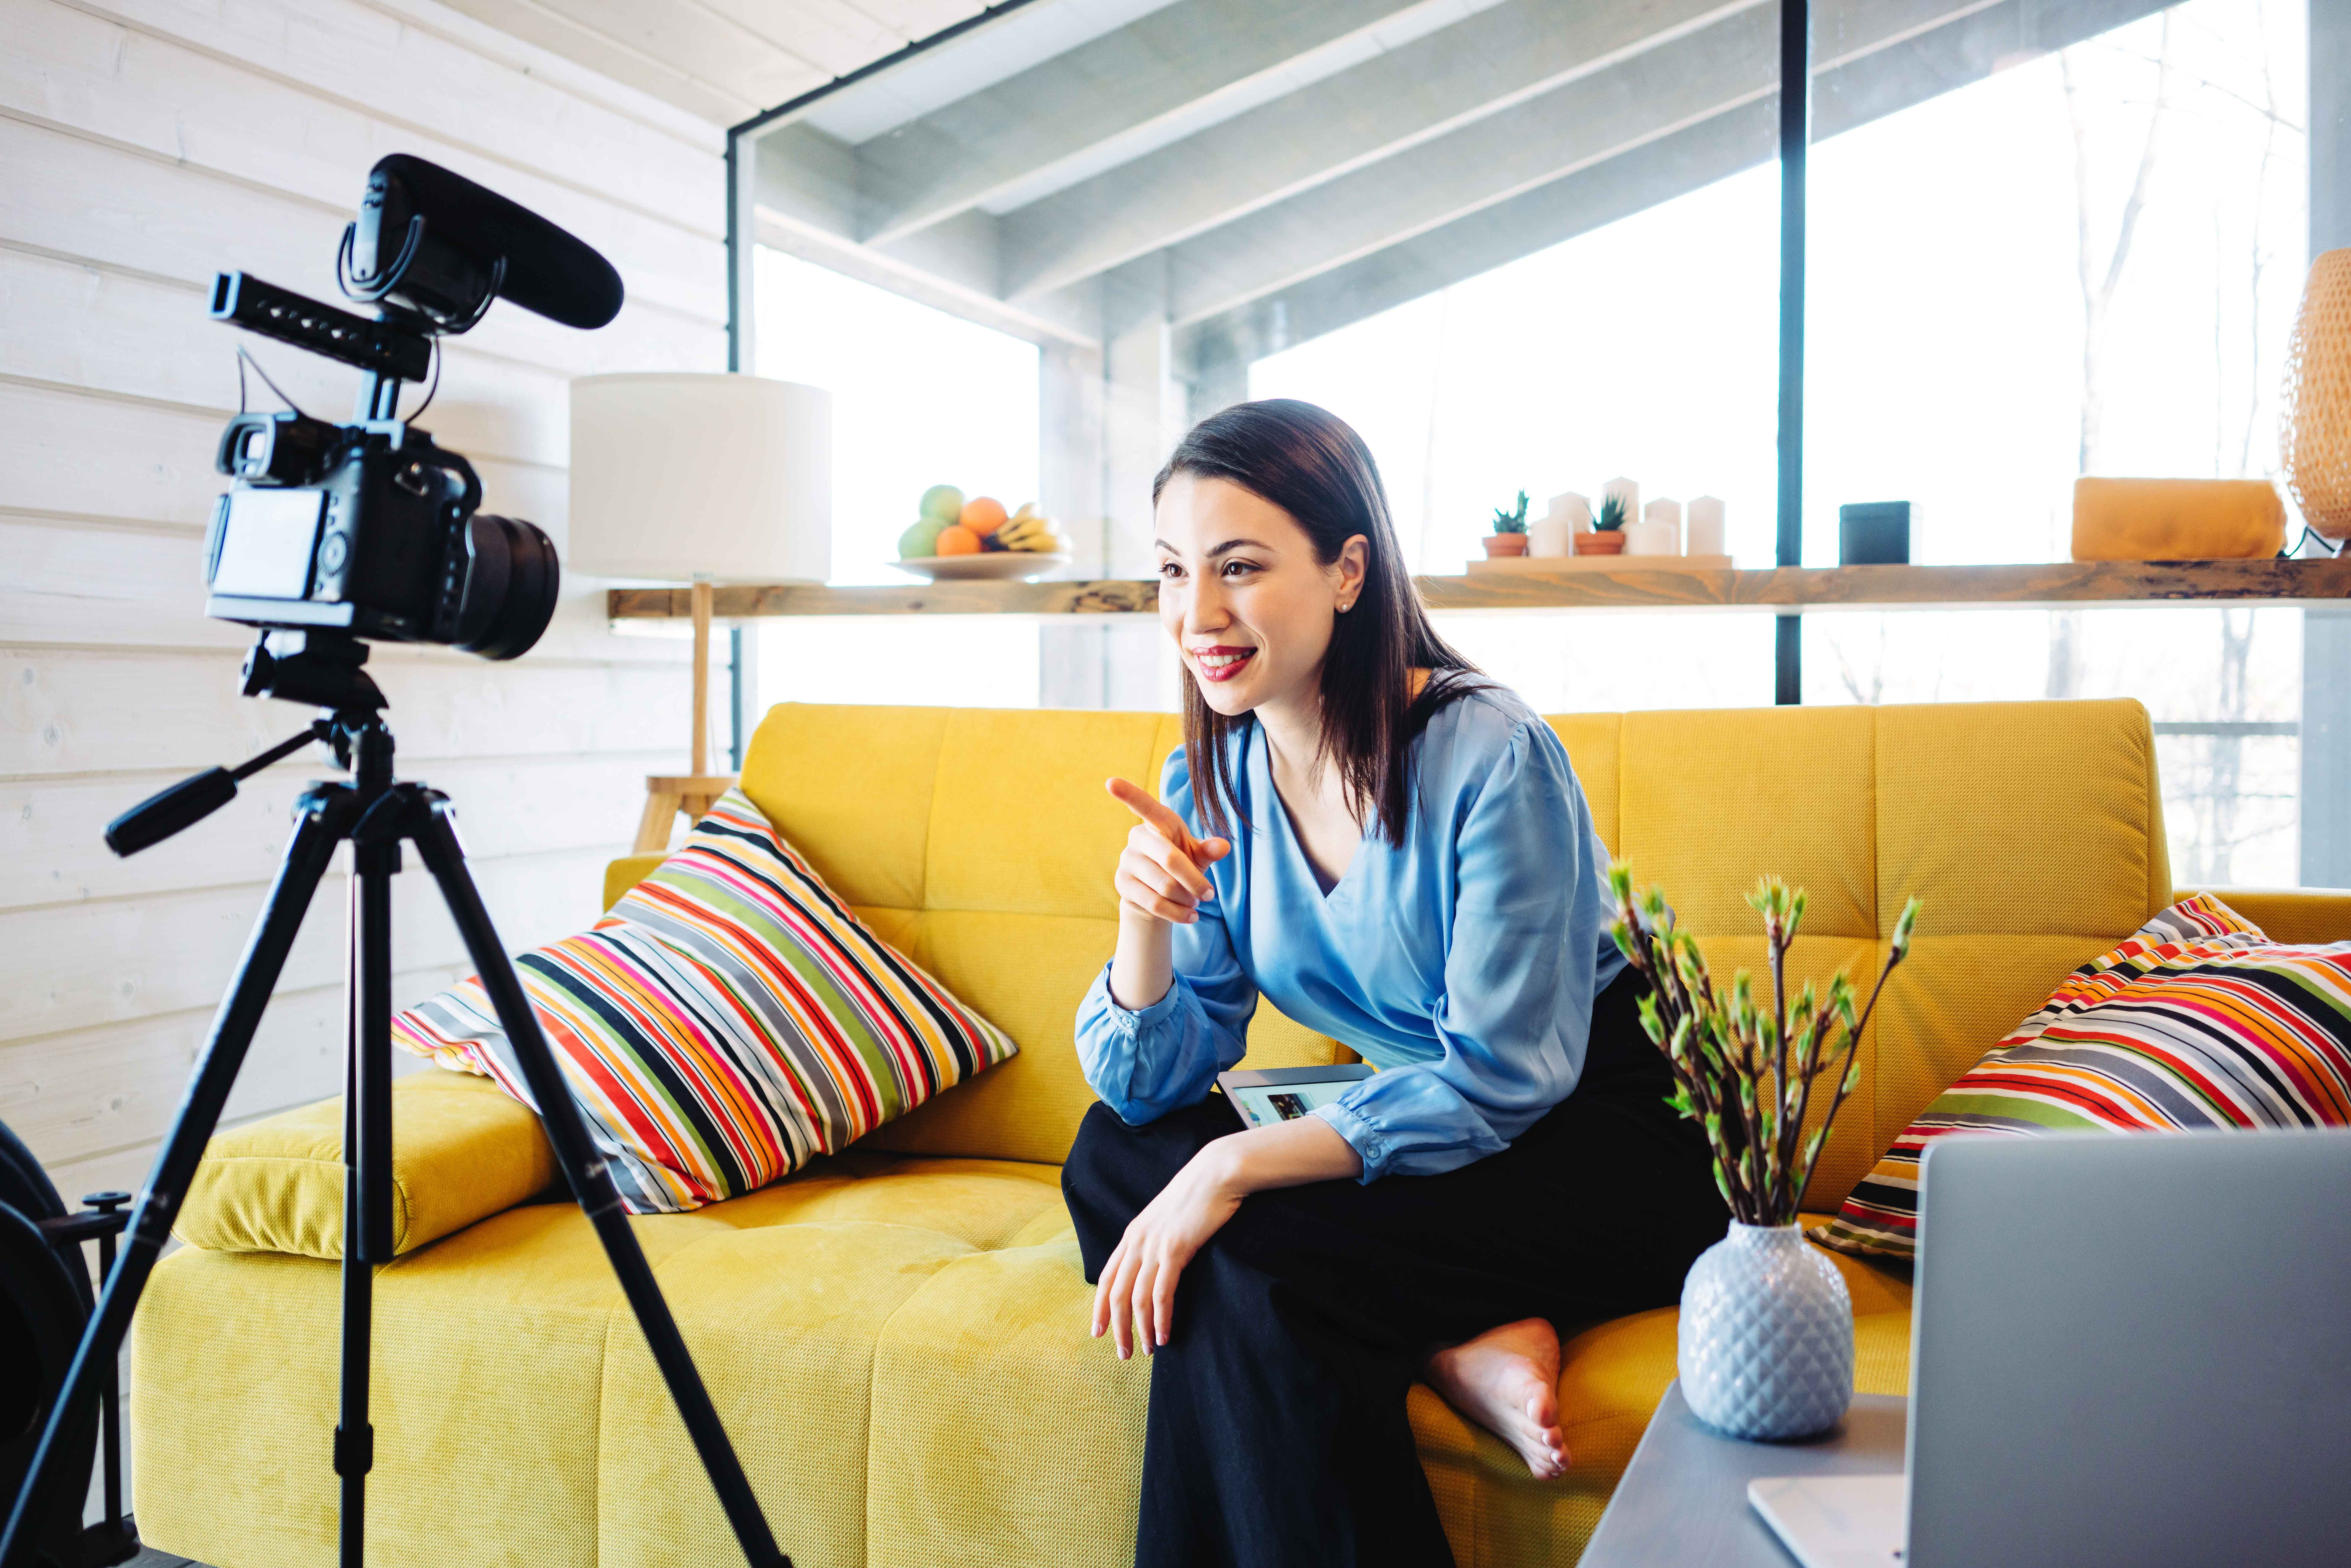 Woman seated on a yellow couch taping video content with a remote setup.